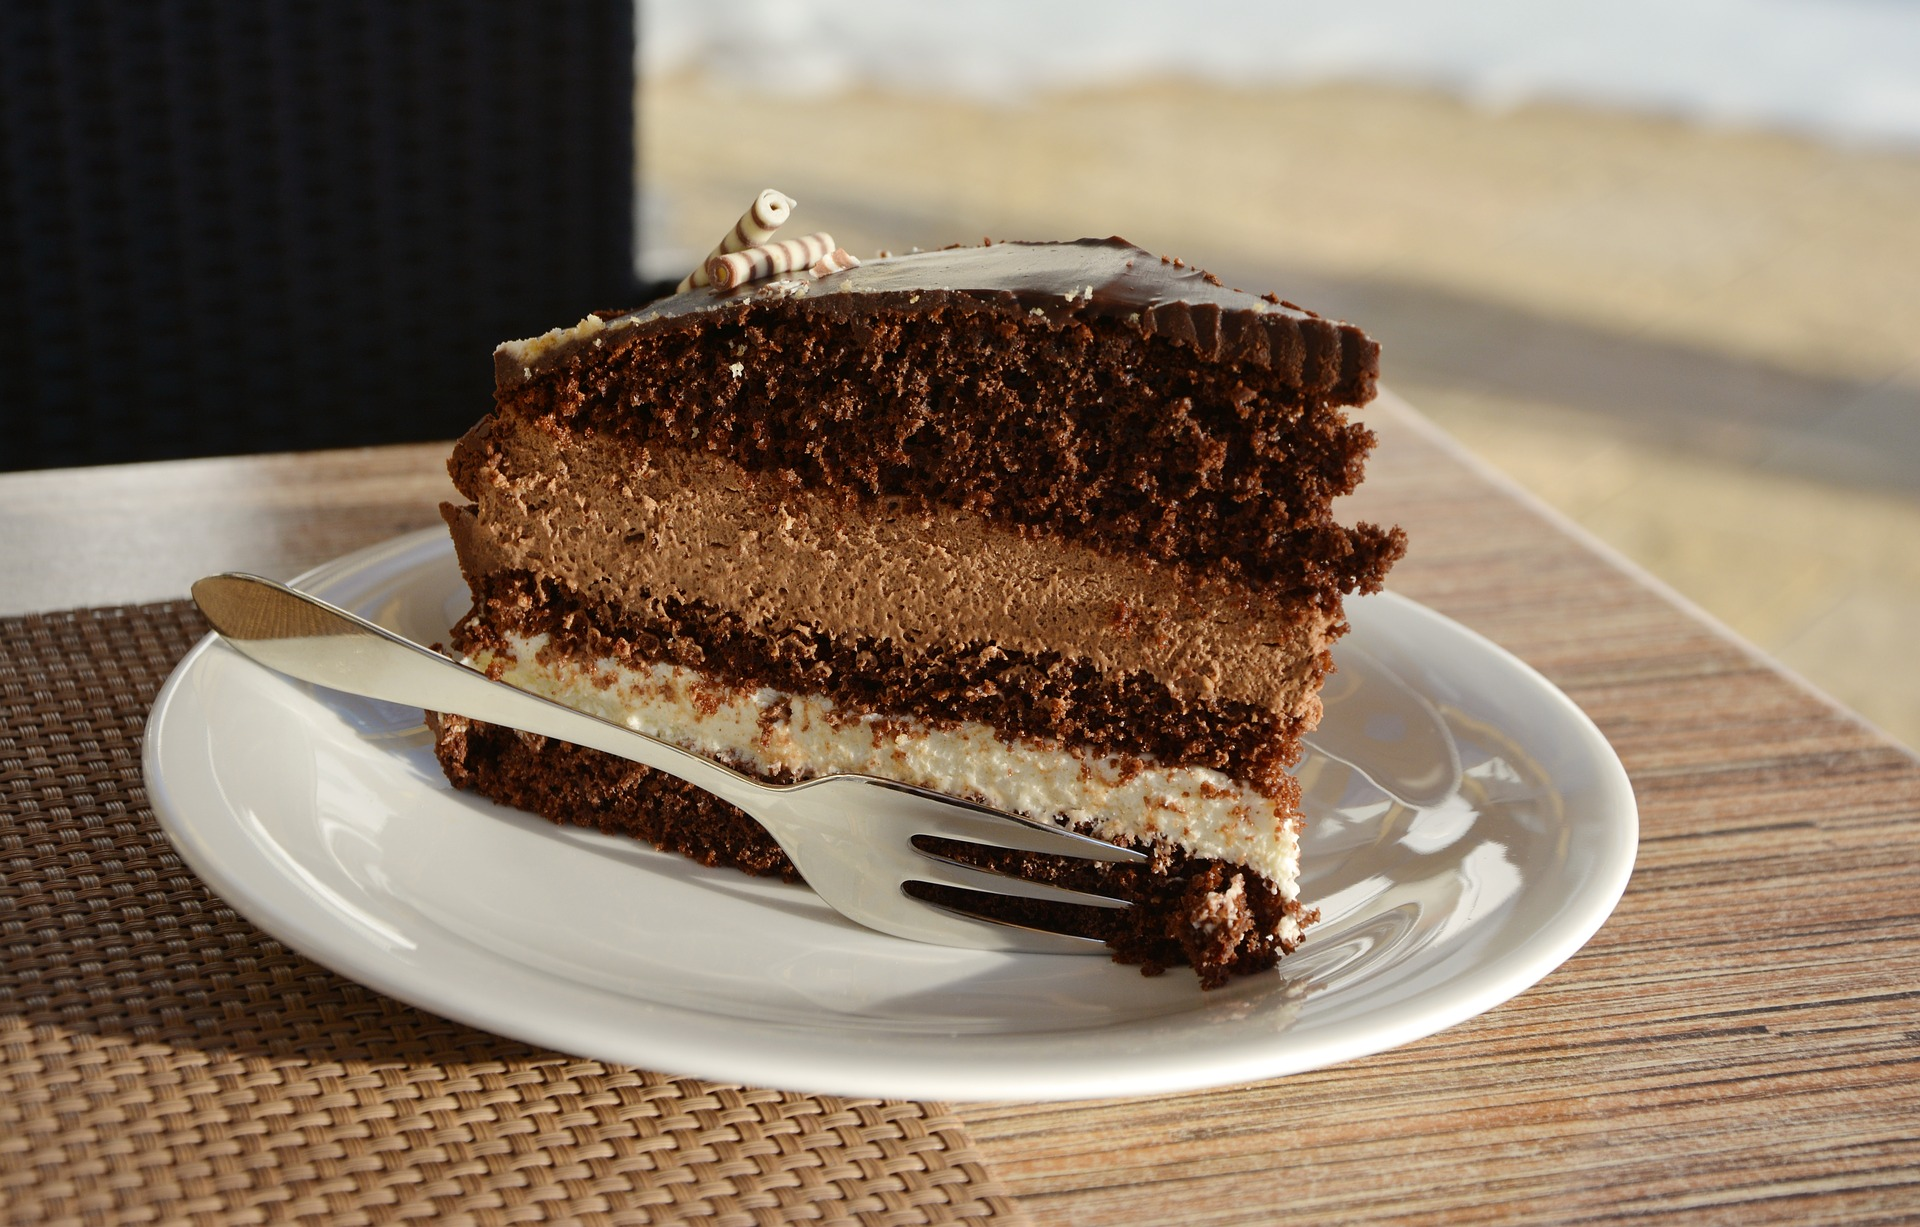 My favorite! Chocolate Cake. And it breaks up the post with some drool-worthy yumminess! Image courtesy of Pixabay